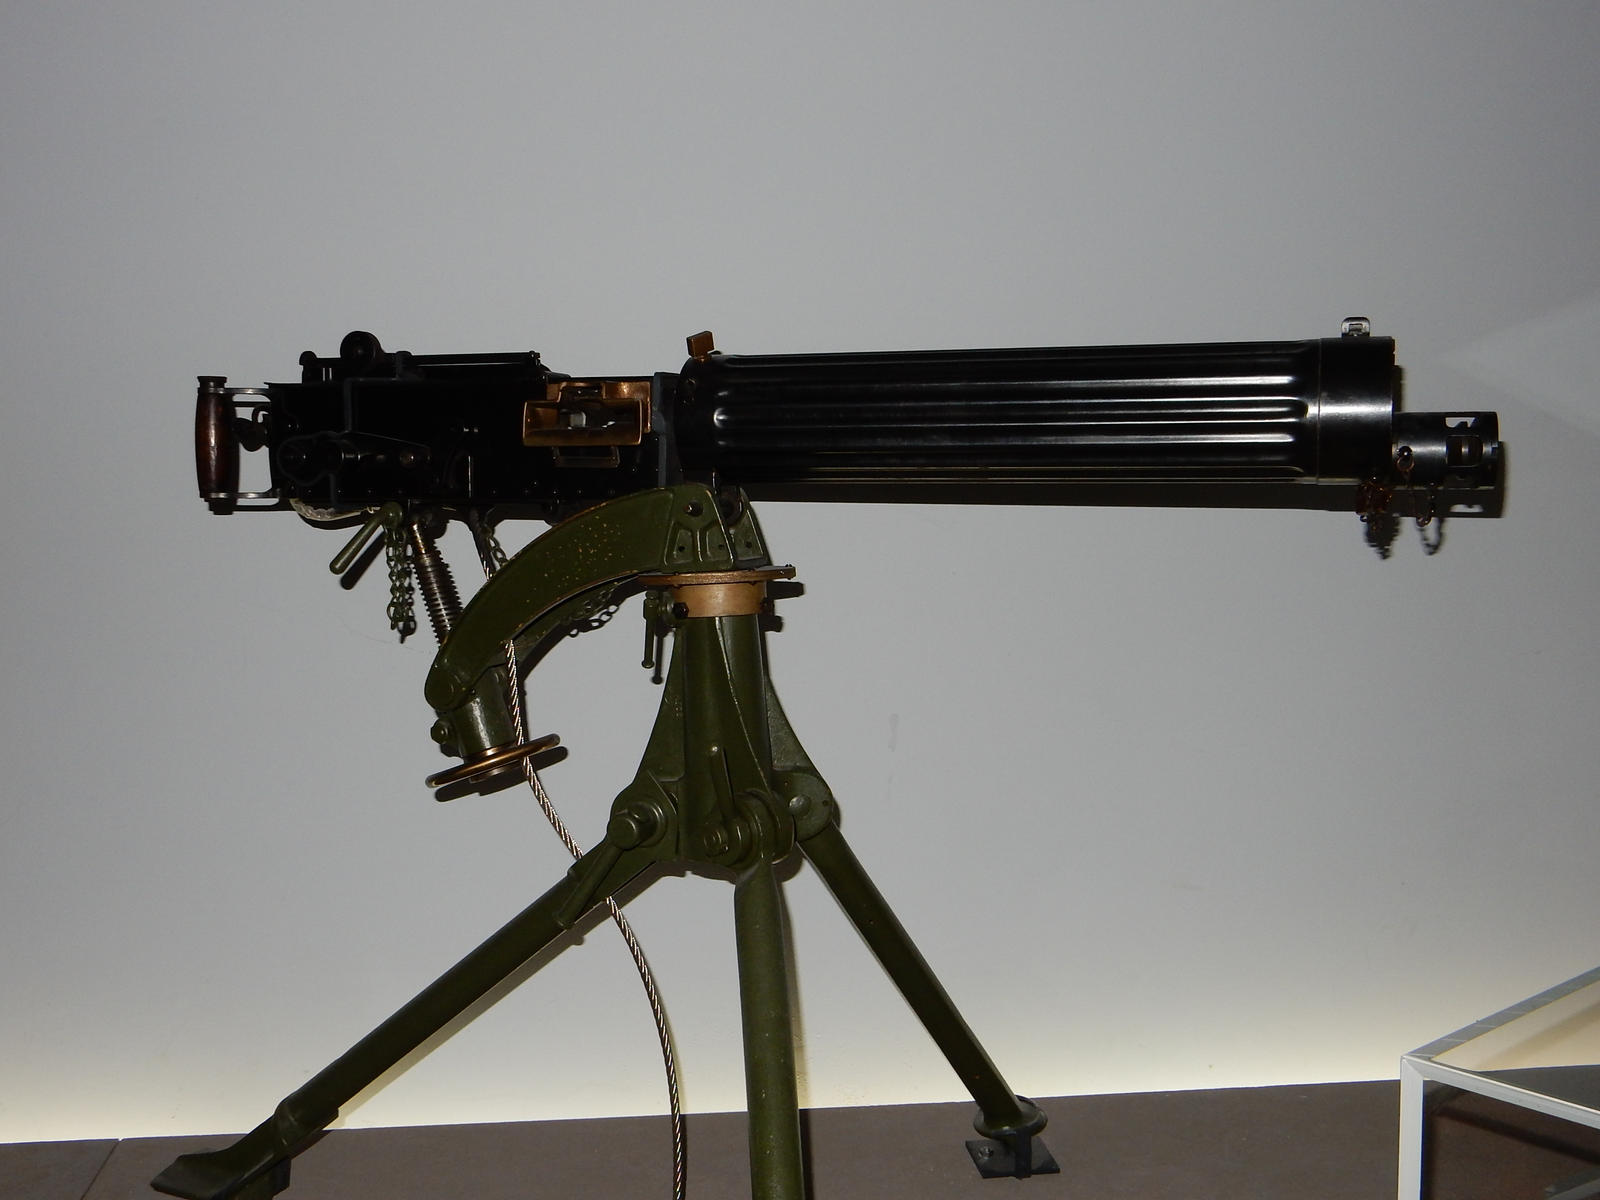 Vickers Mk I  303 Machine Gun by rlkitterman on DeviantArt